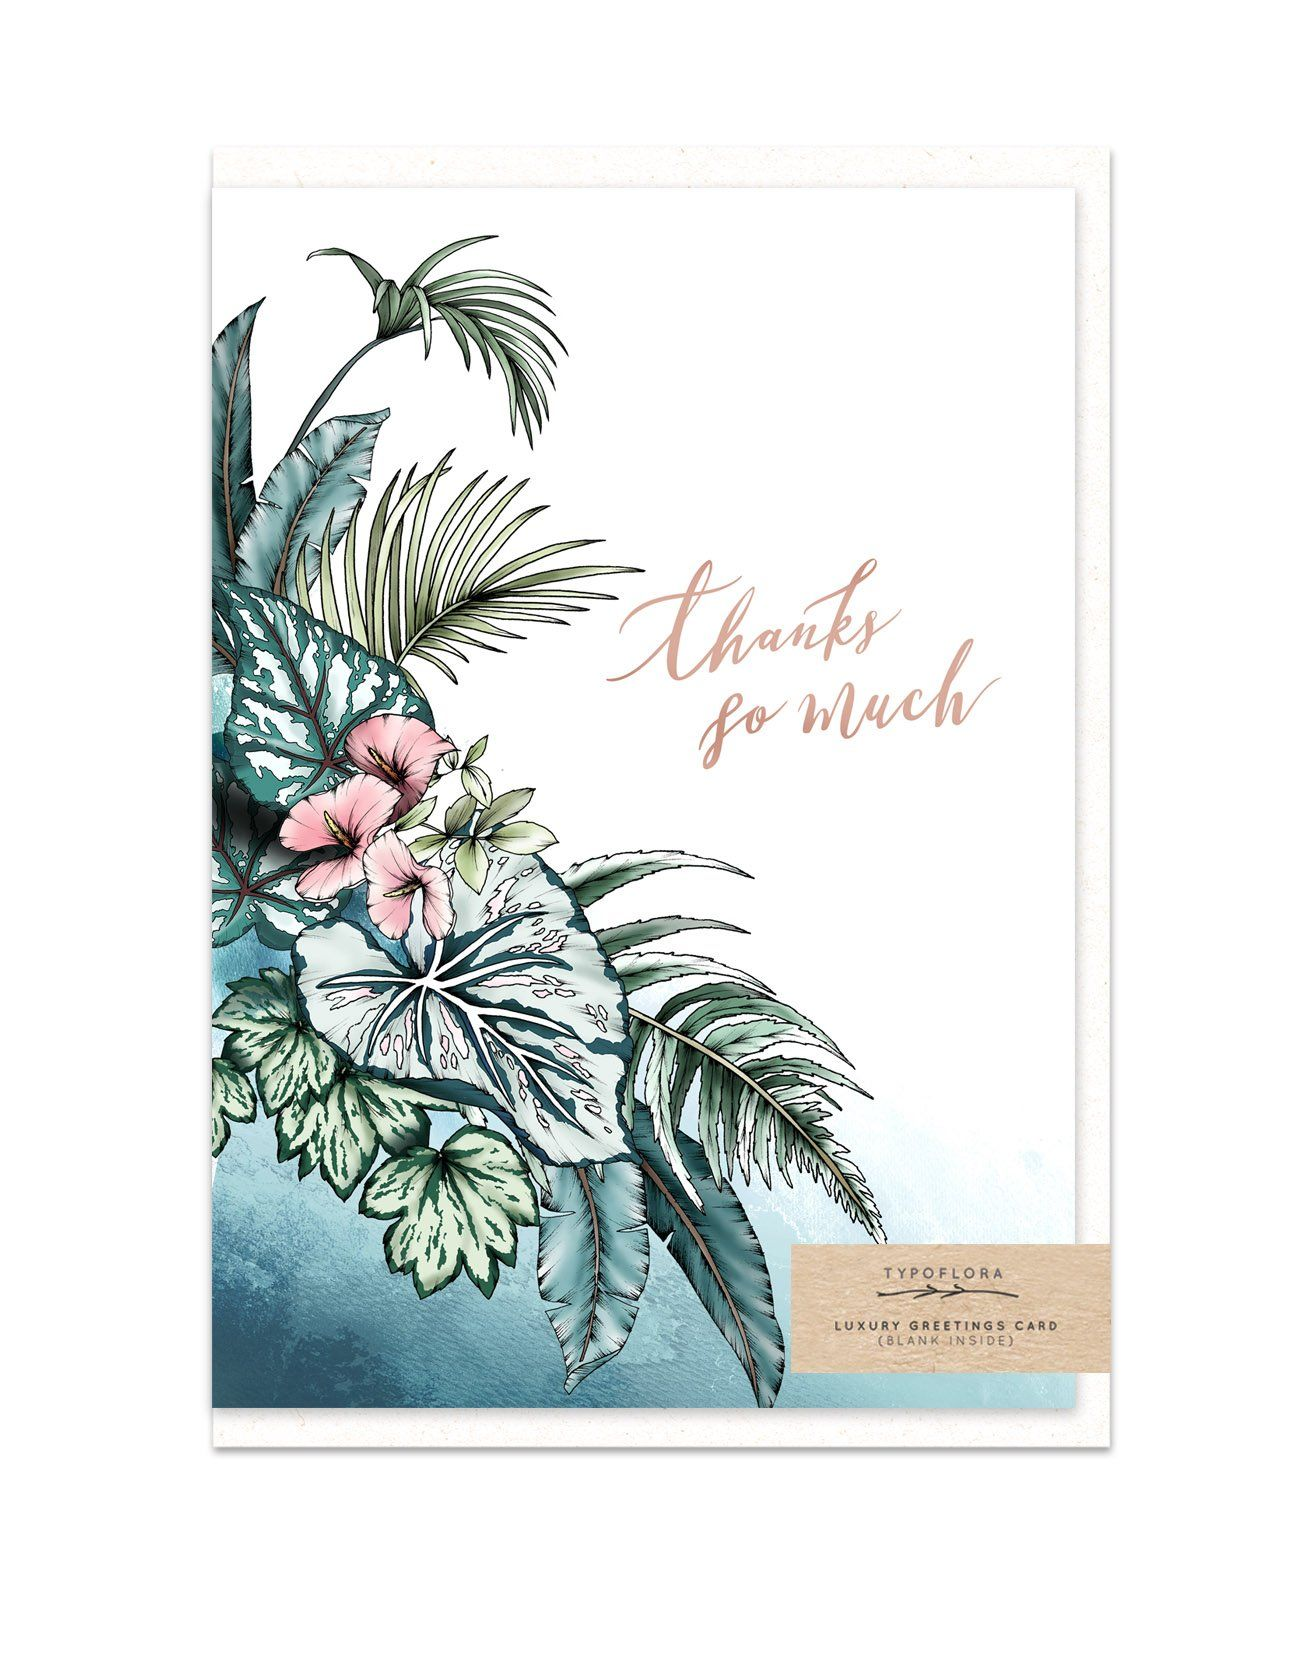 Thanks So Much - Thank You Cards - Typoflora - Naiise